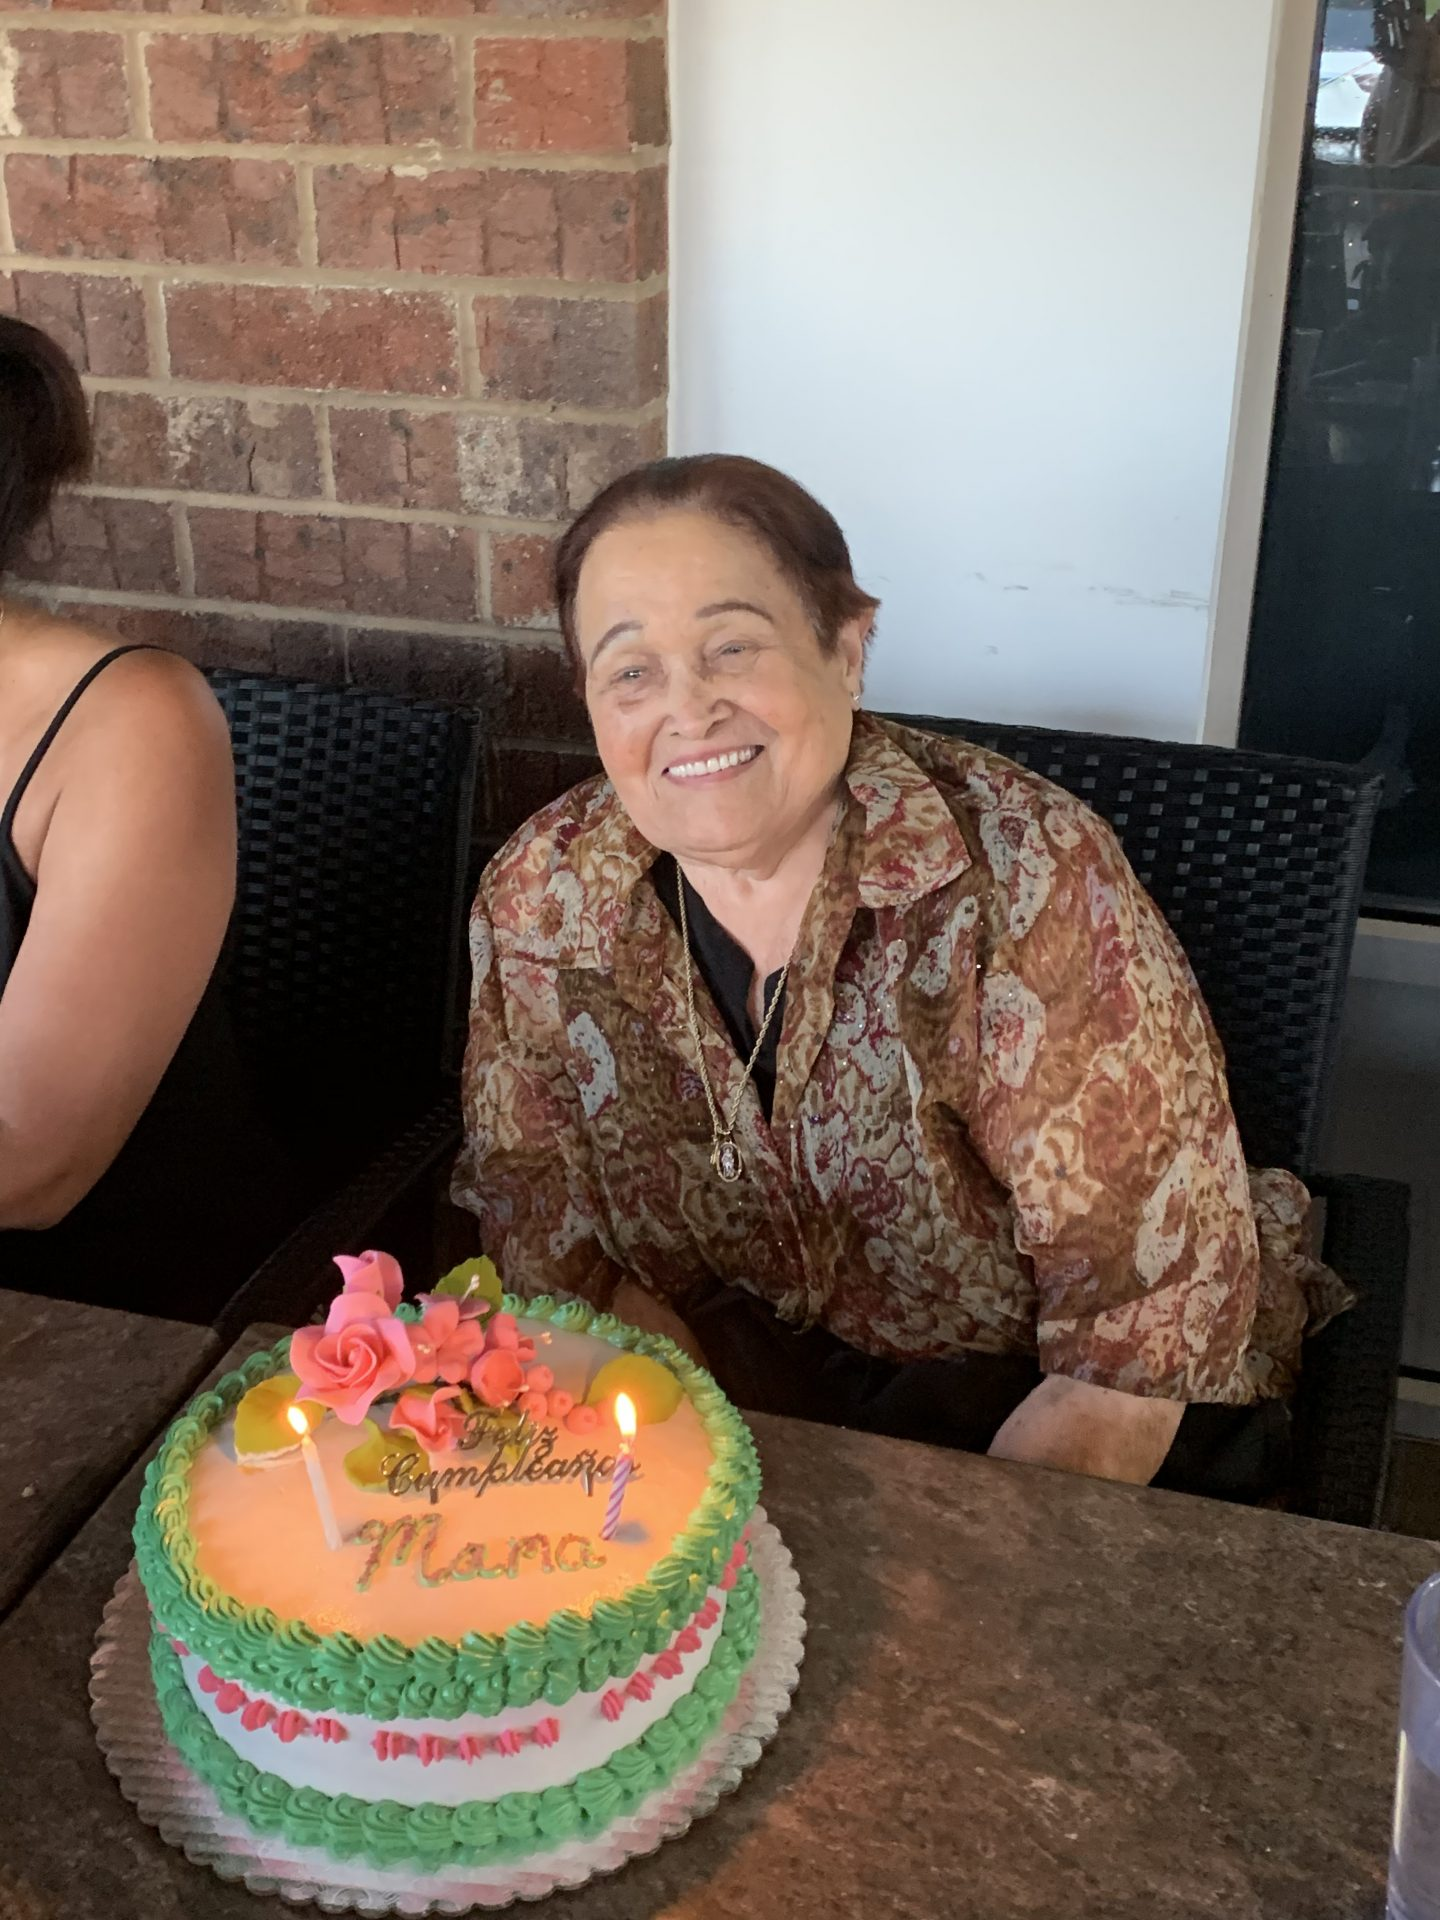 Her last birthday celebration in April. 83 and glowing!